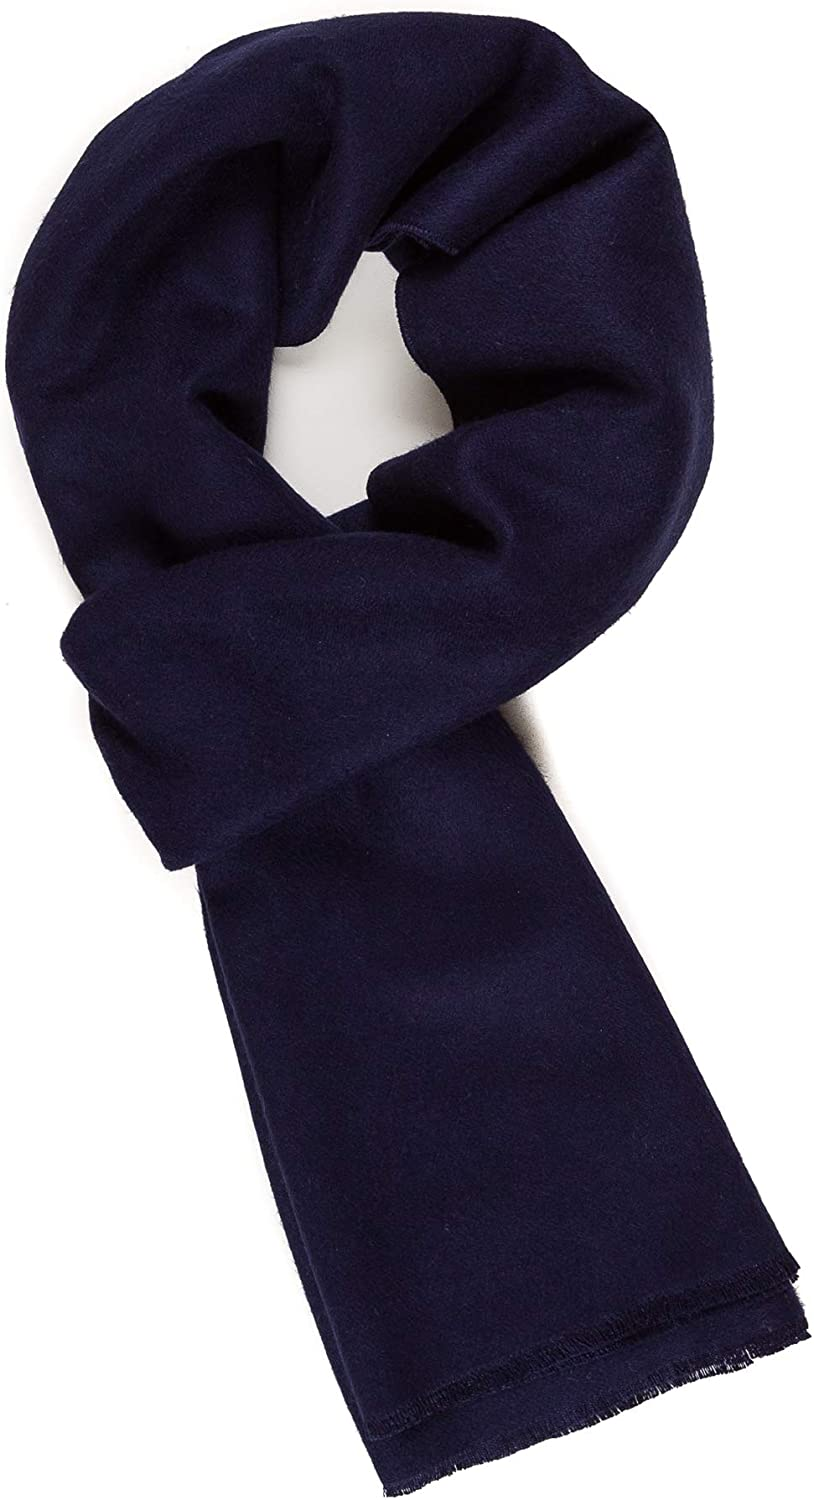 Scarf for Men Reversible Elegant Max 65% OFF f Classic Feel Cashmere New York Mall Scarves